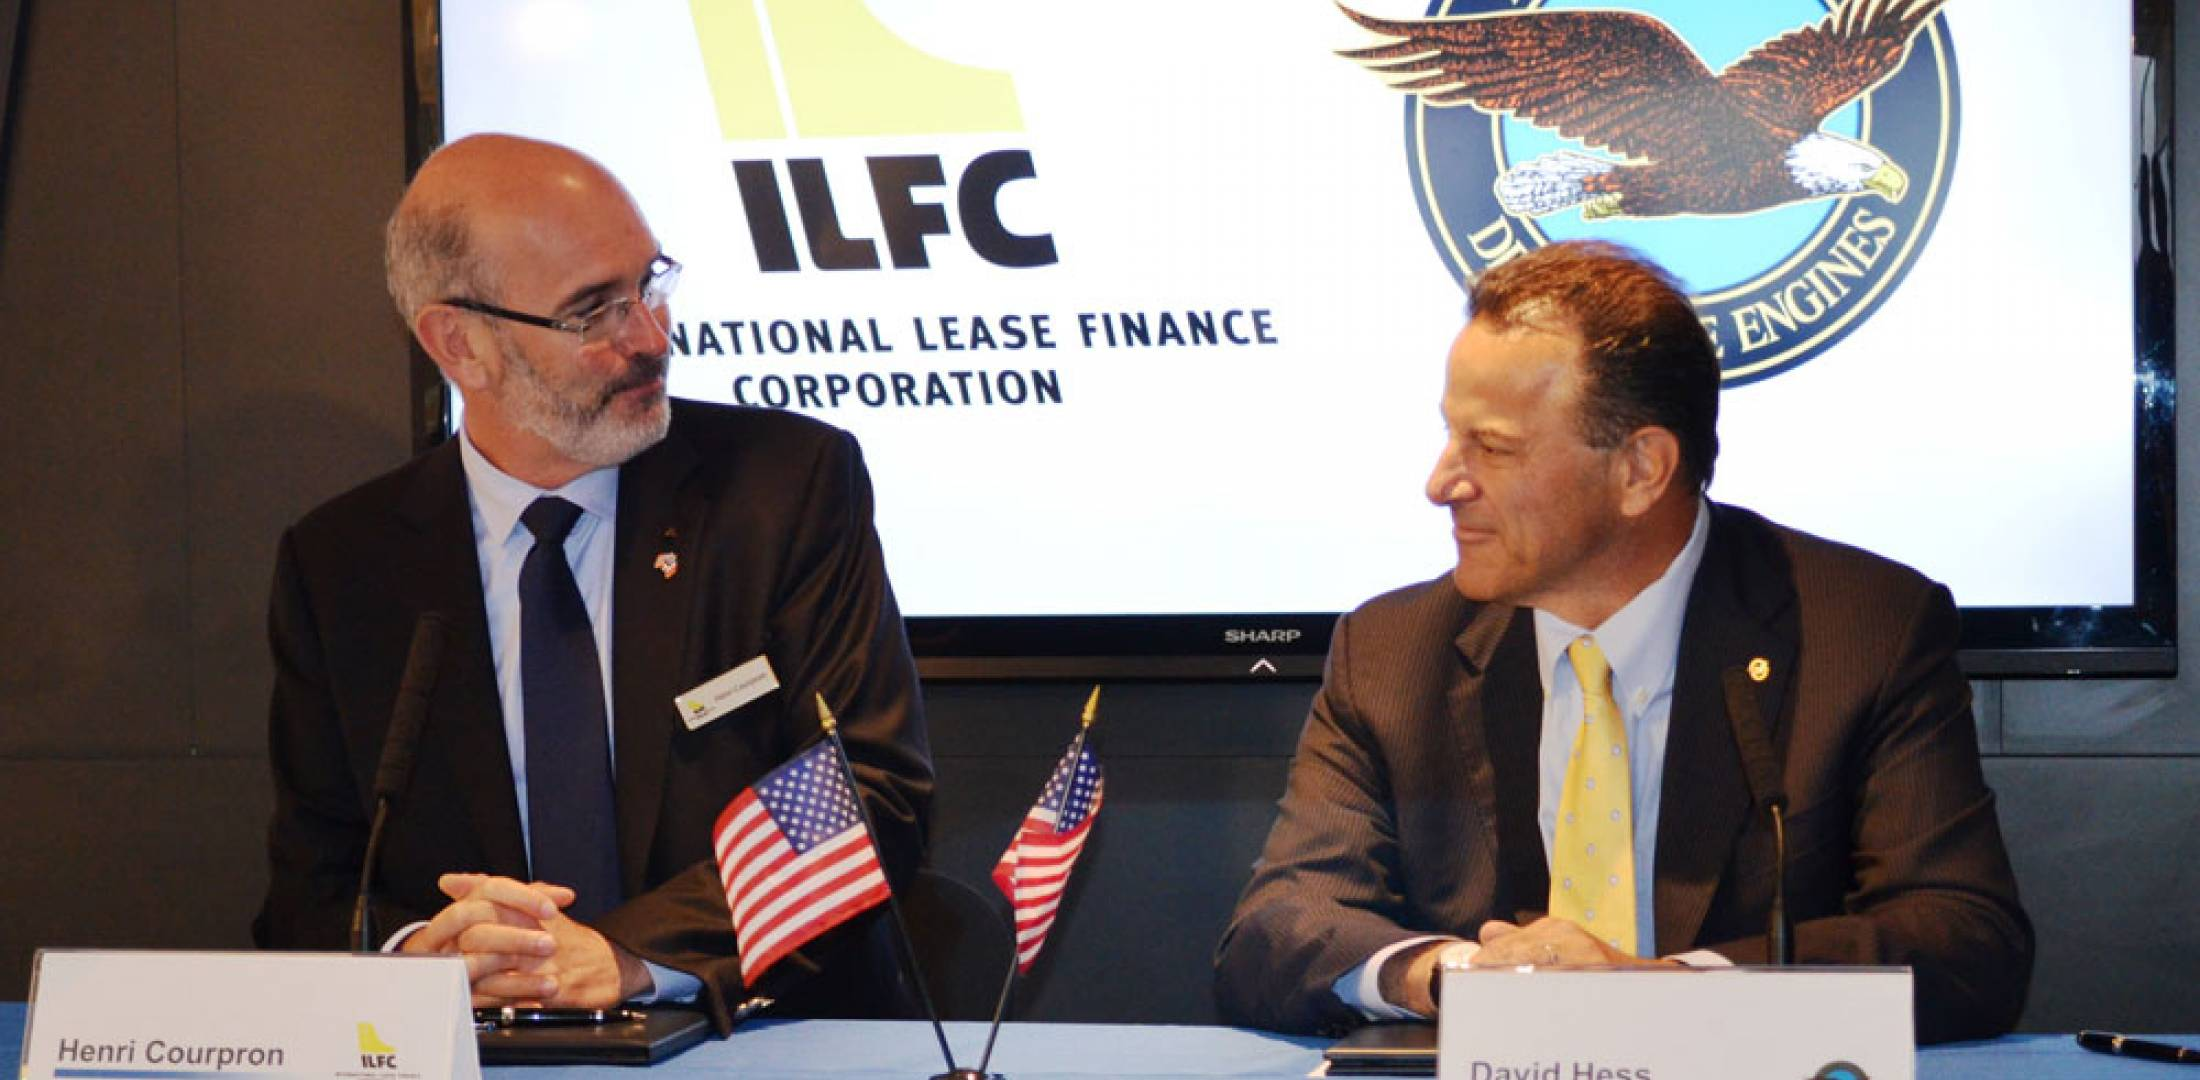 ILFC president and CEO Henri Courpron, left